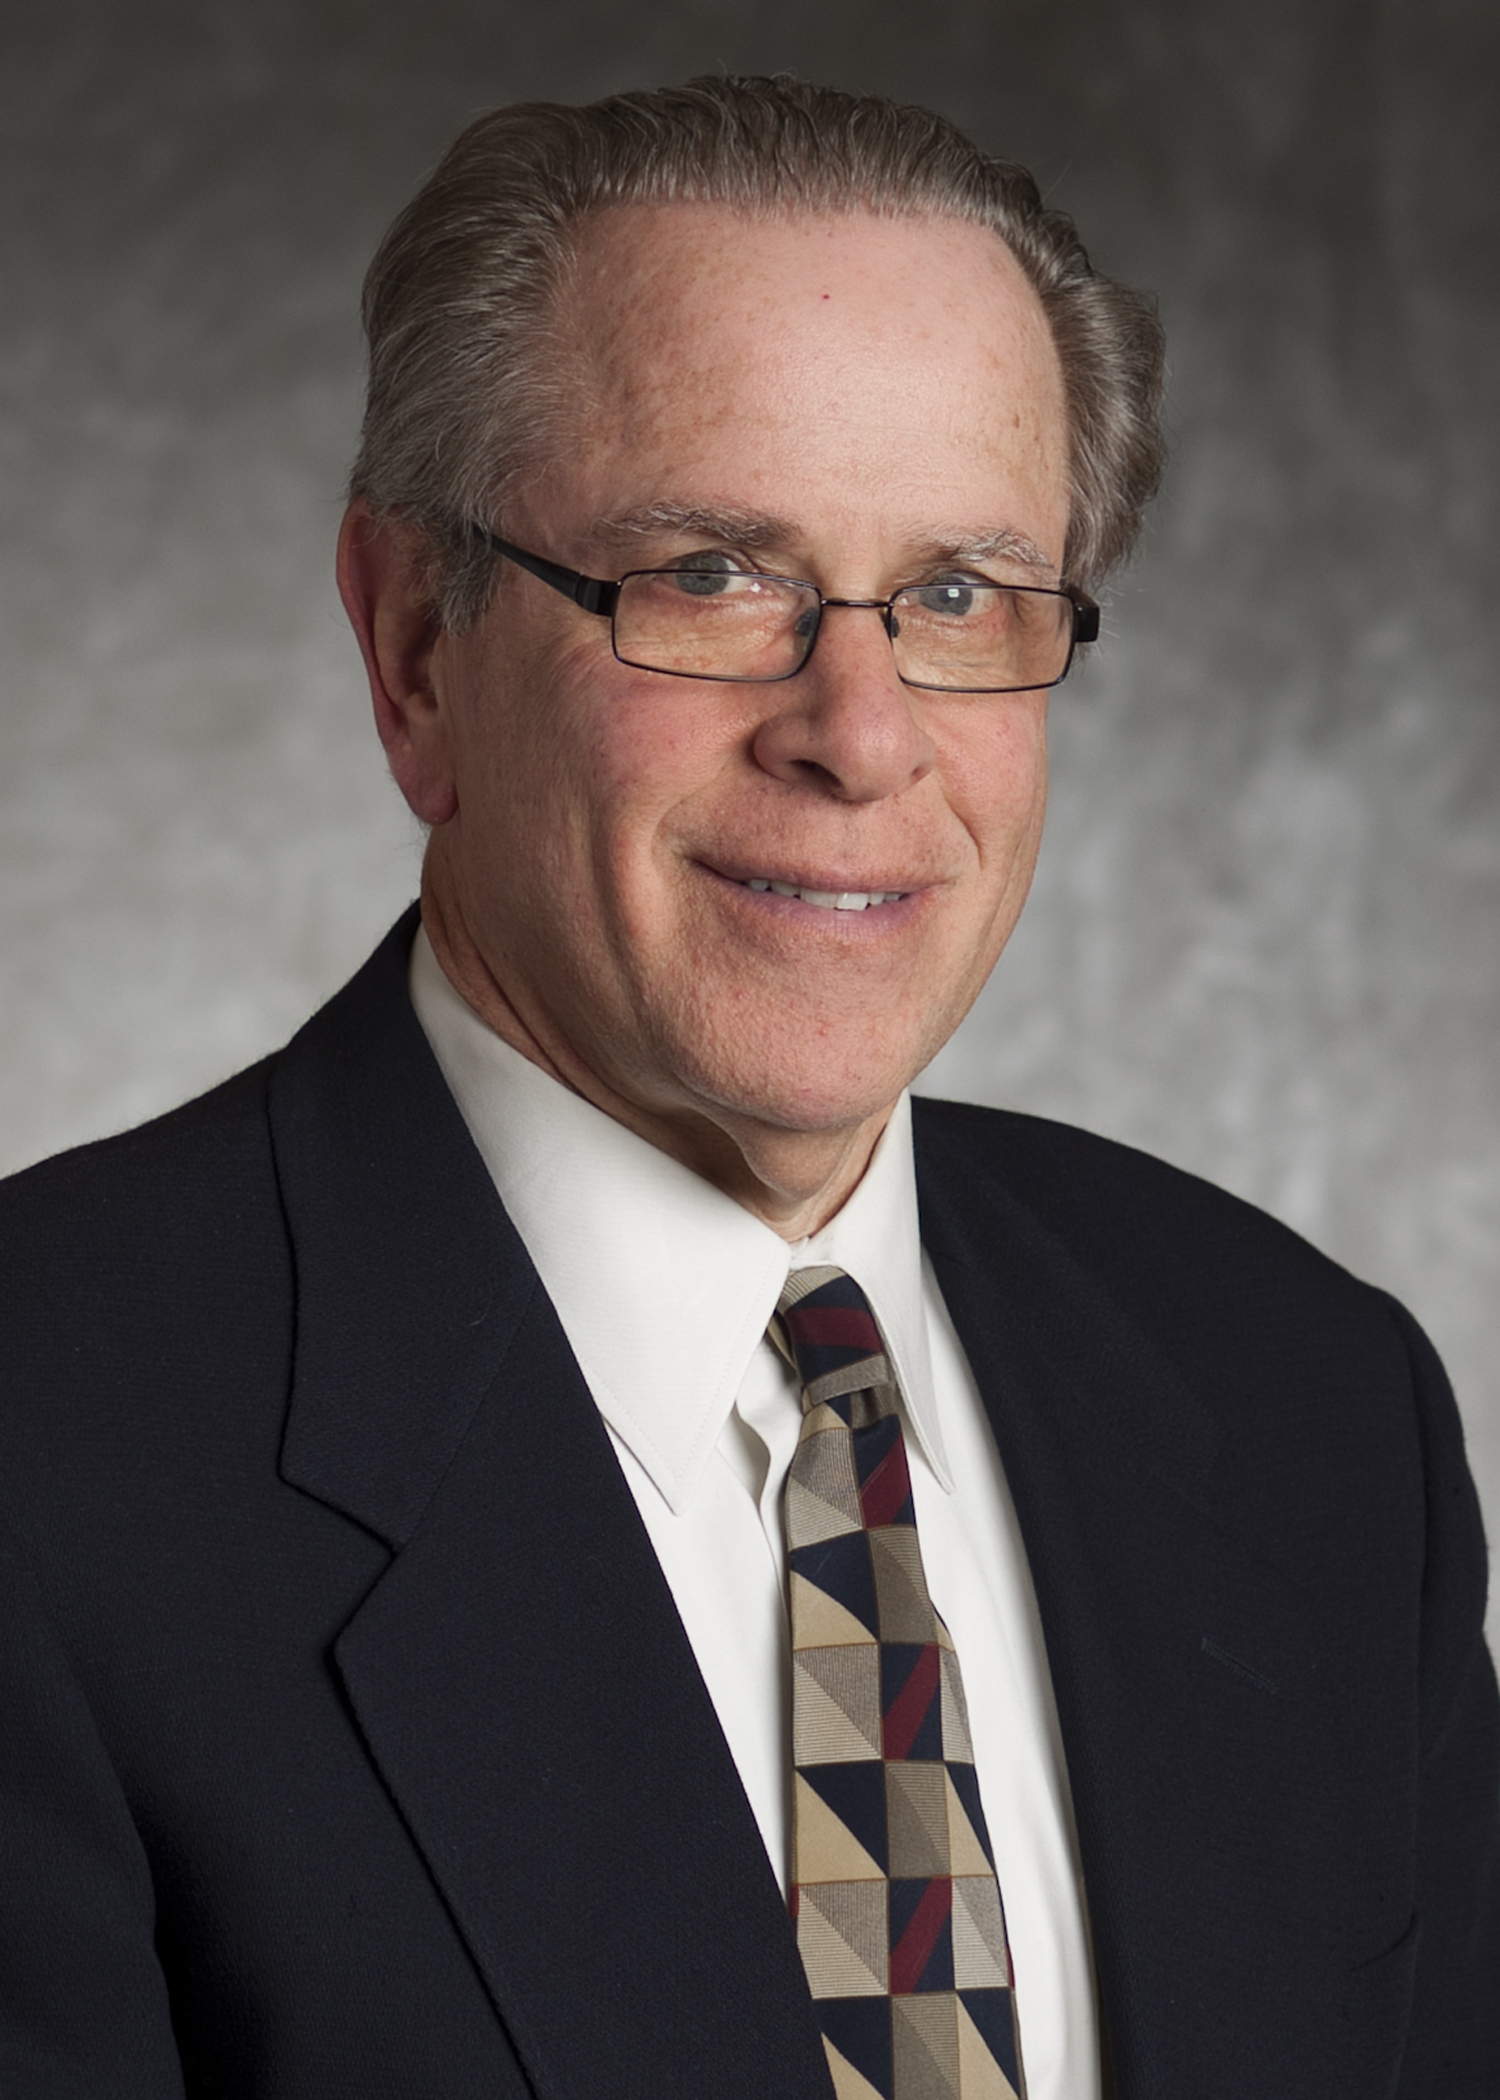 Richard M. Chasen, MD, FACG